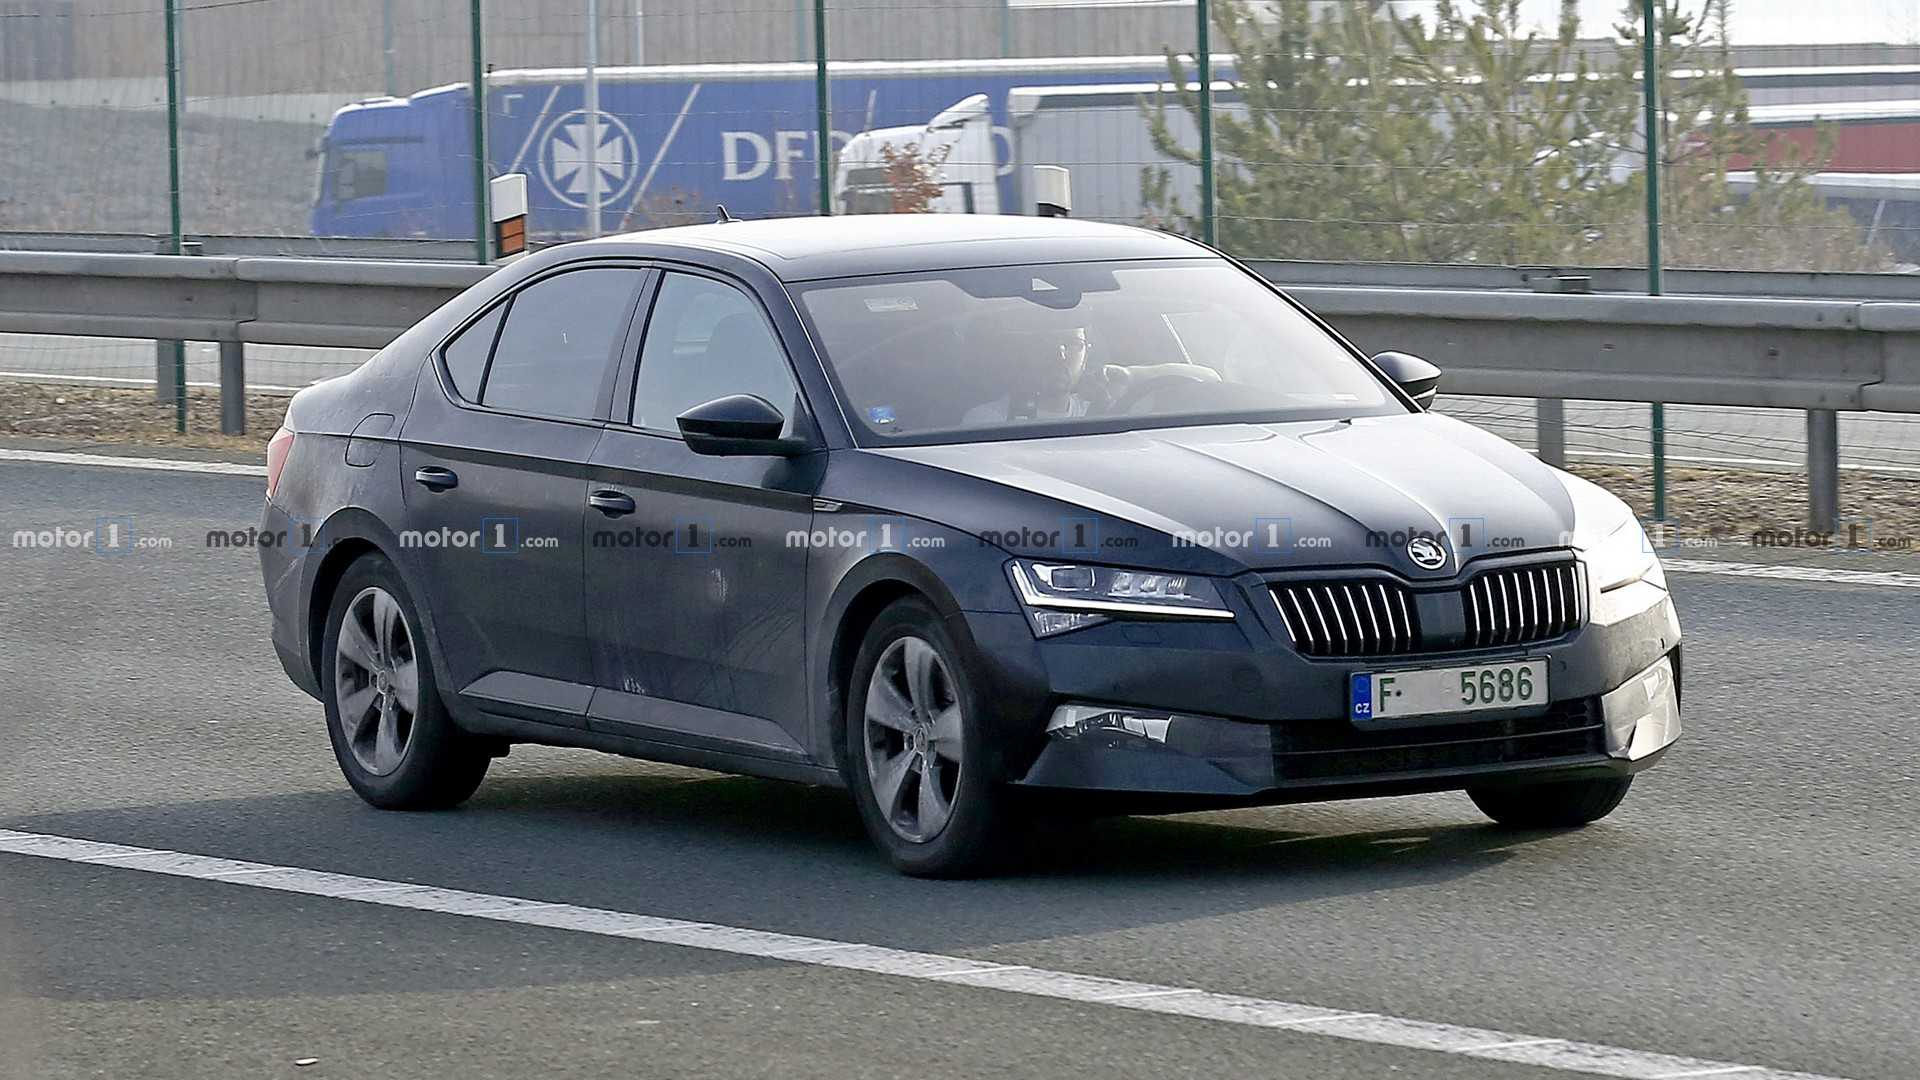 74 The Best 2019 Skoda Superb Exterior